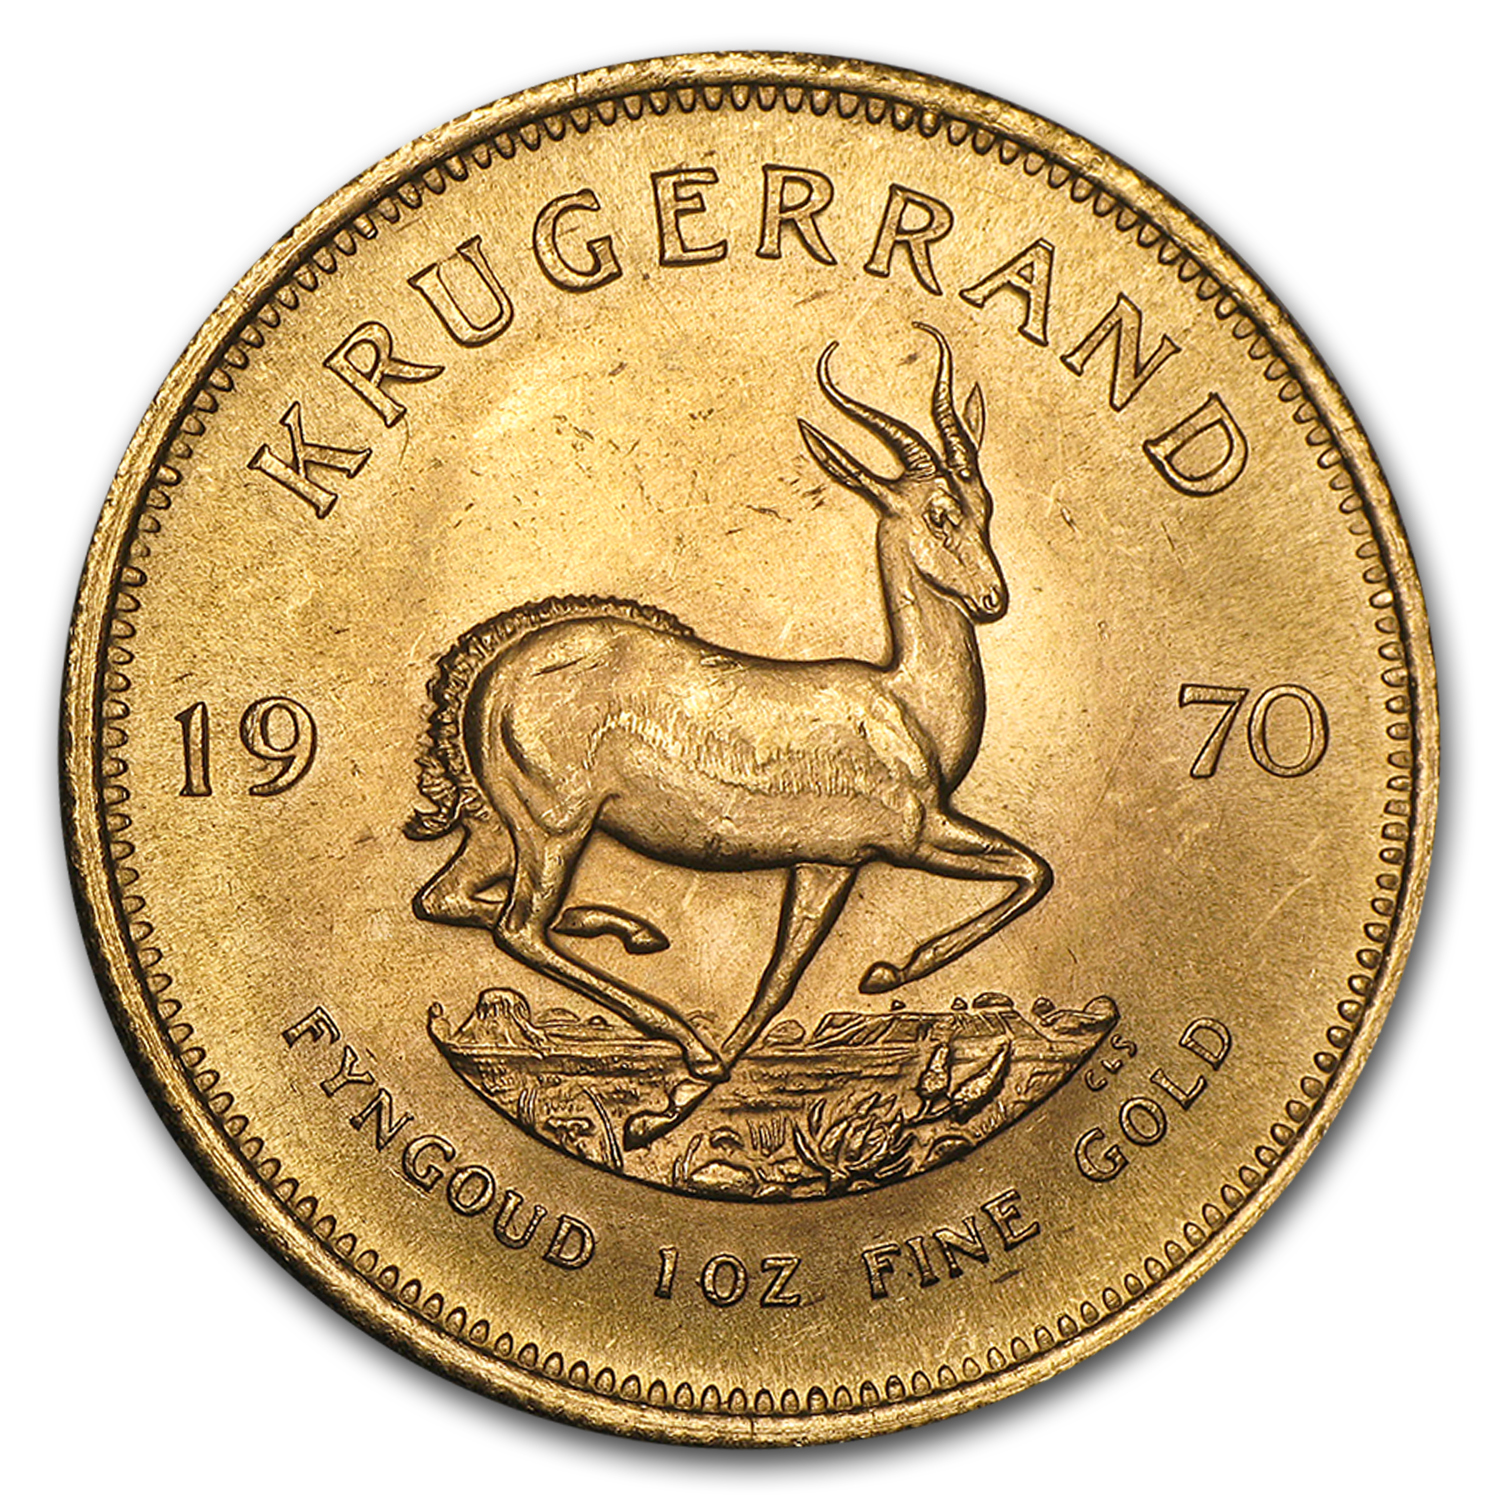 1970 South Africa 1 oz Gold Krugerrand